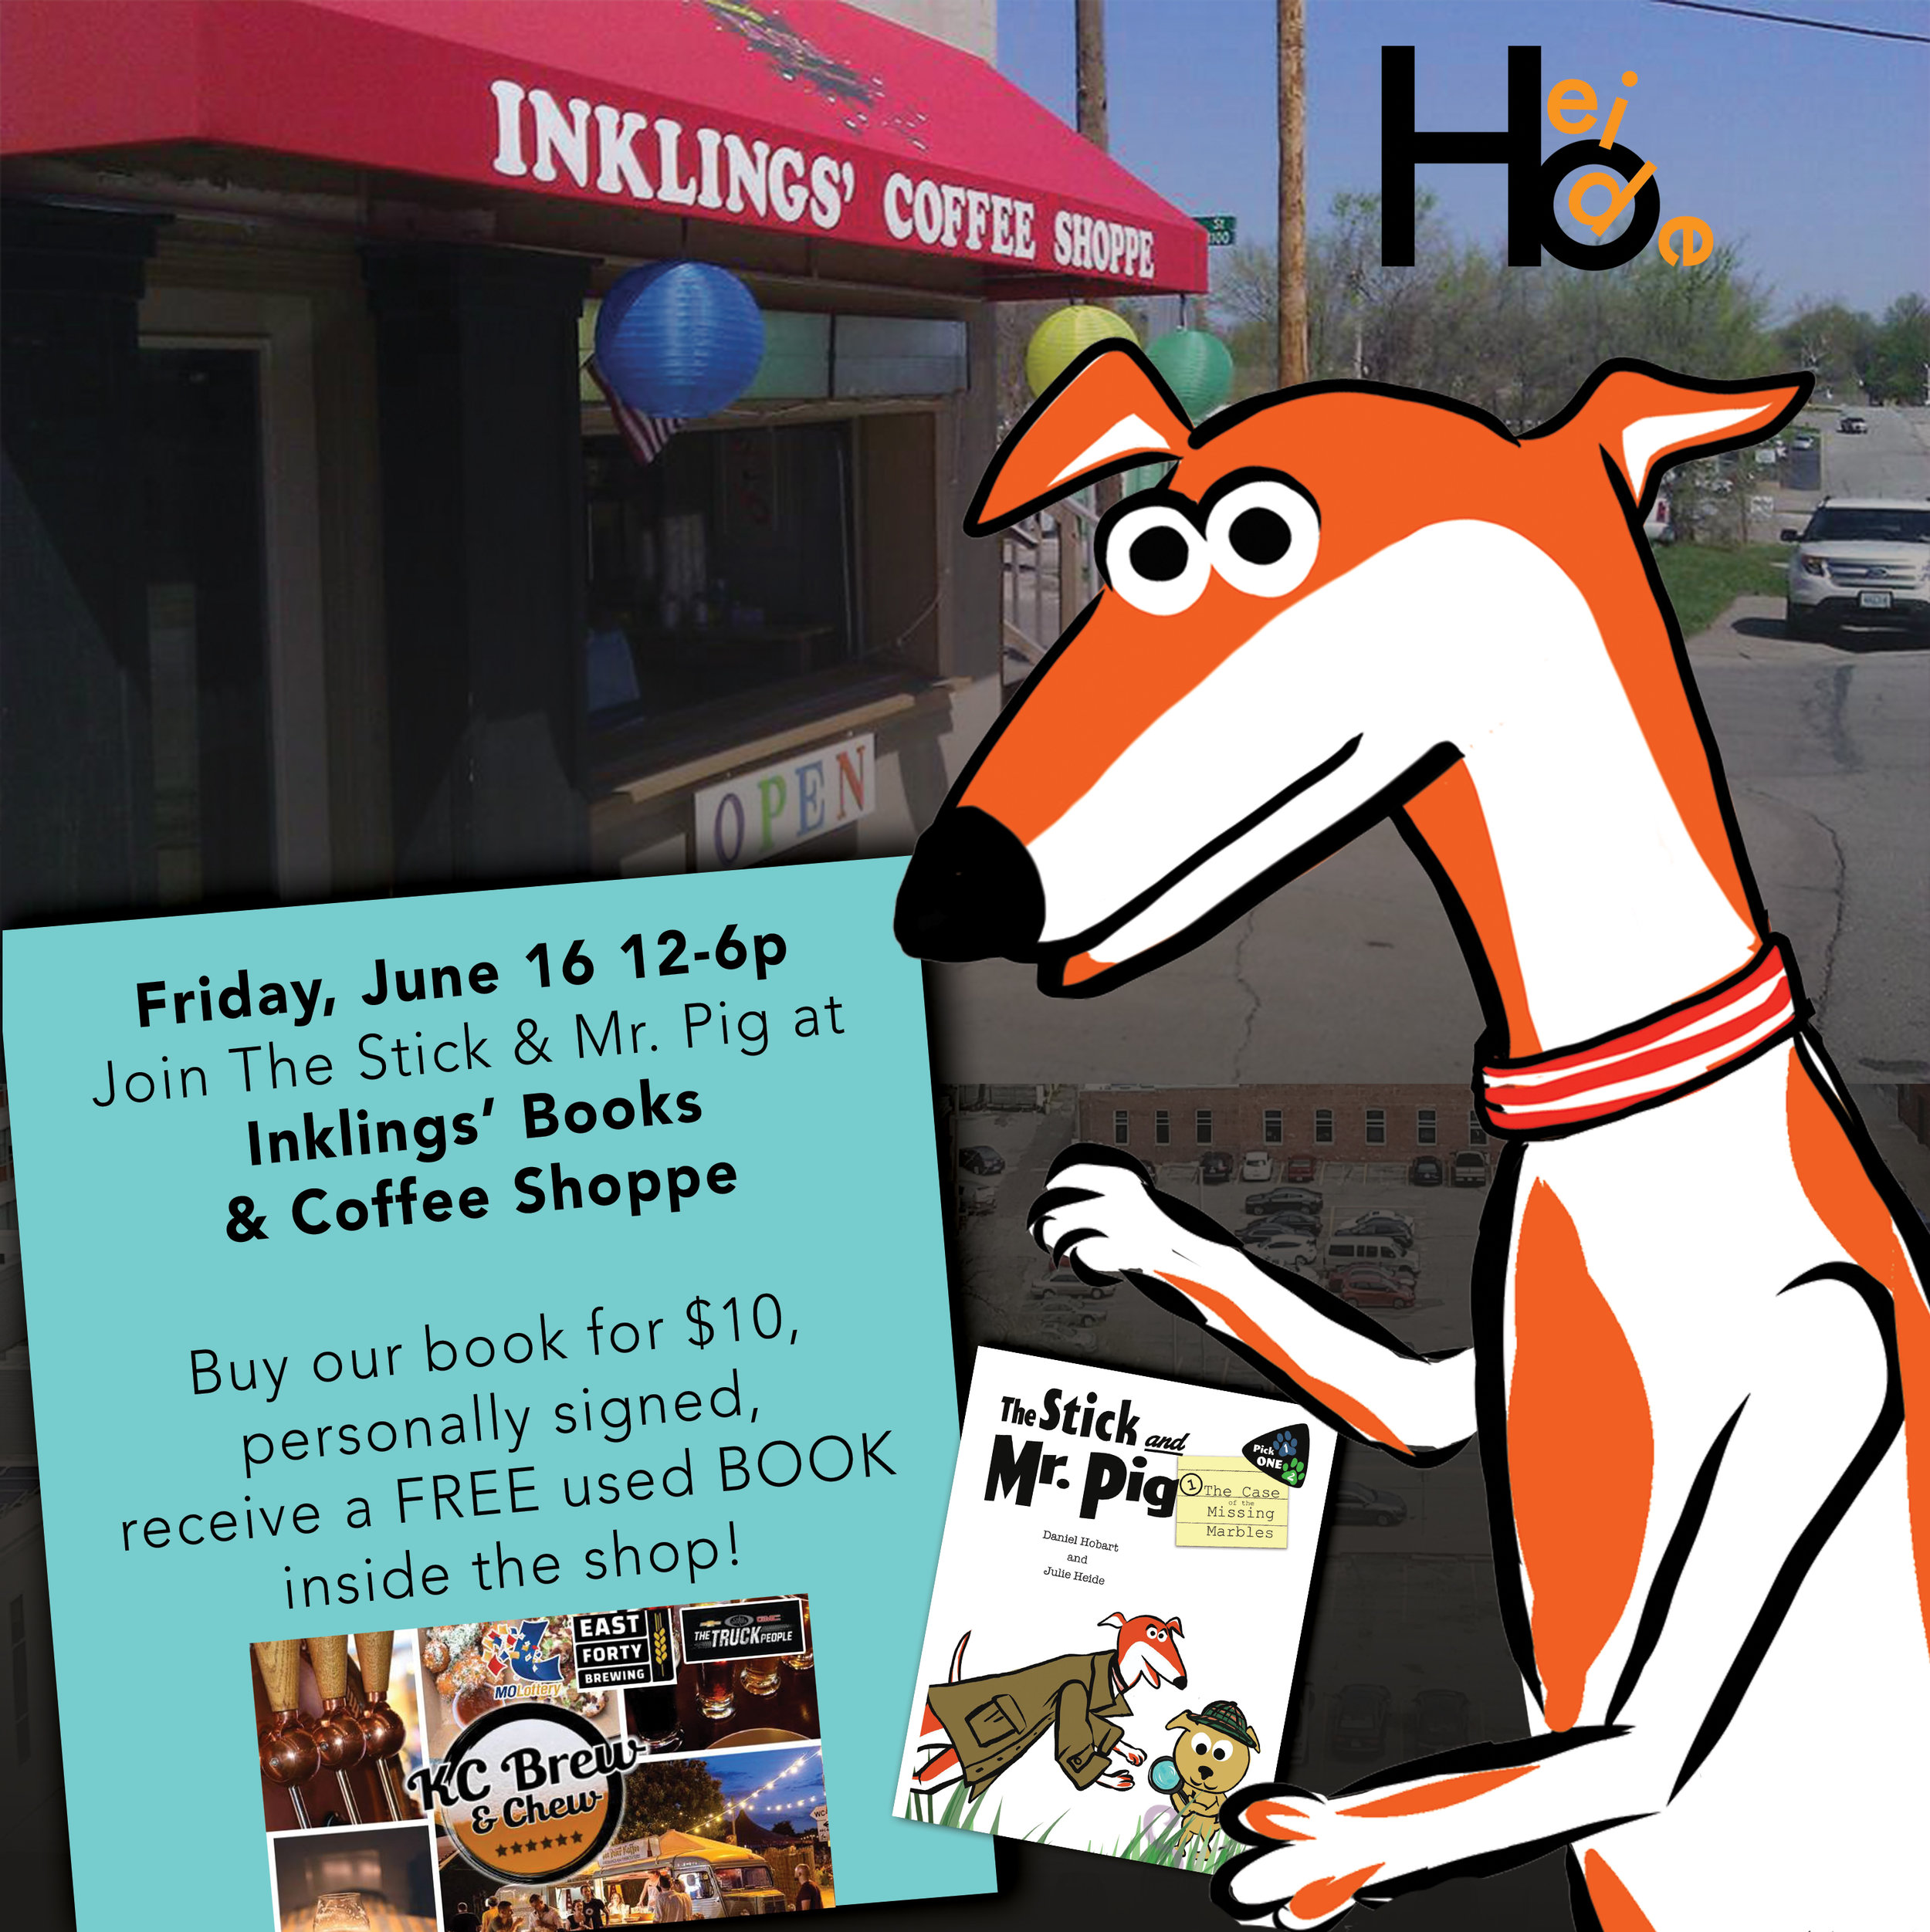 Join us at Inklings' Books & Coffee Shop in downtown Blue Springs! - In conjunction with the Kid Zone and KC Brew & Chew, we will be selling and signing The Stick & Mr. Pig.Stop by Saturday, June 16 12-6pm to check out Inklings' bookstore and coffee shoppe!Buy our book, get a FREE USED BOOK from the bookstore!